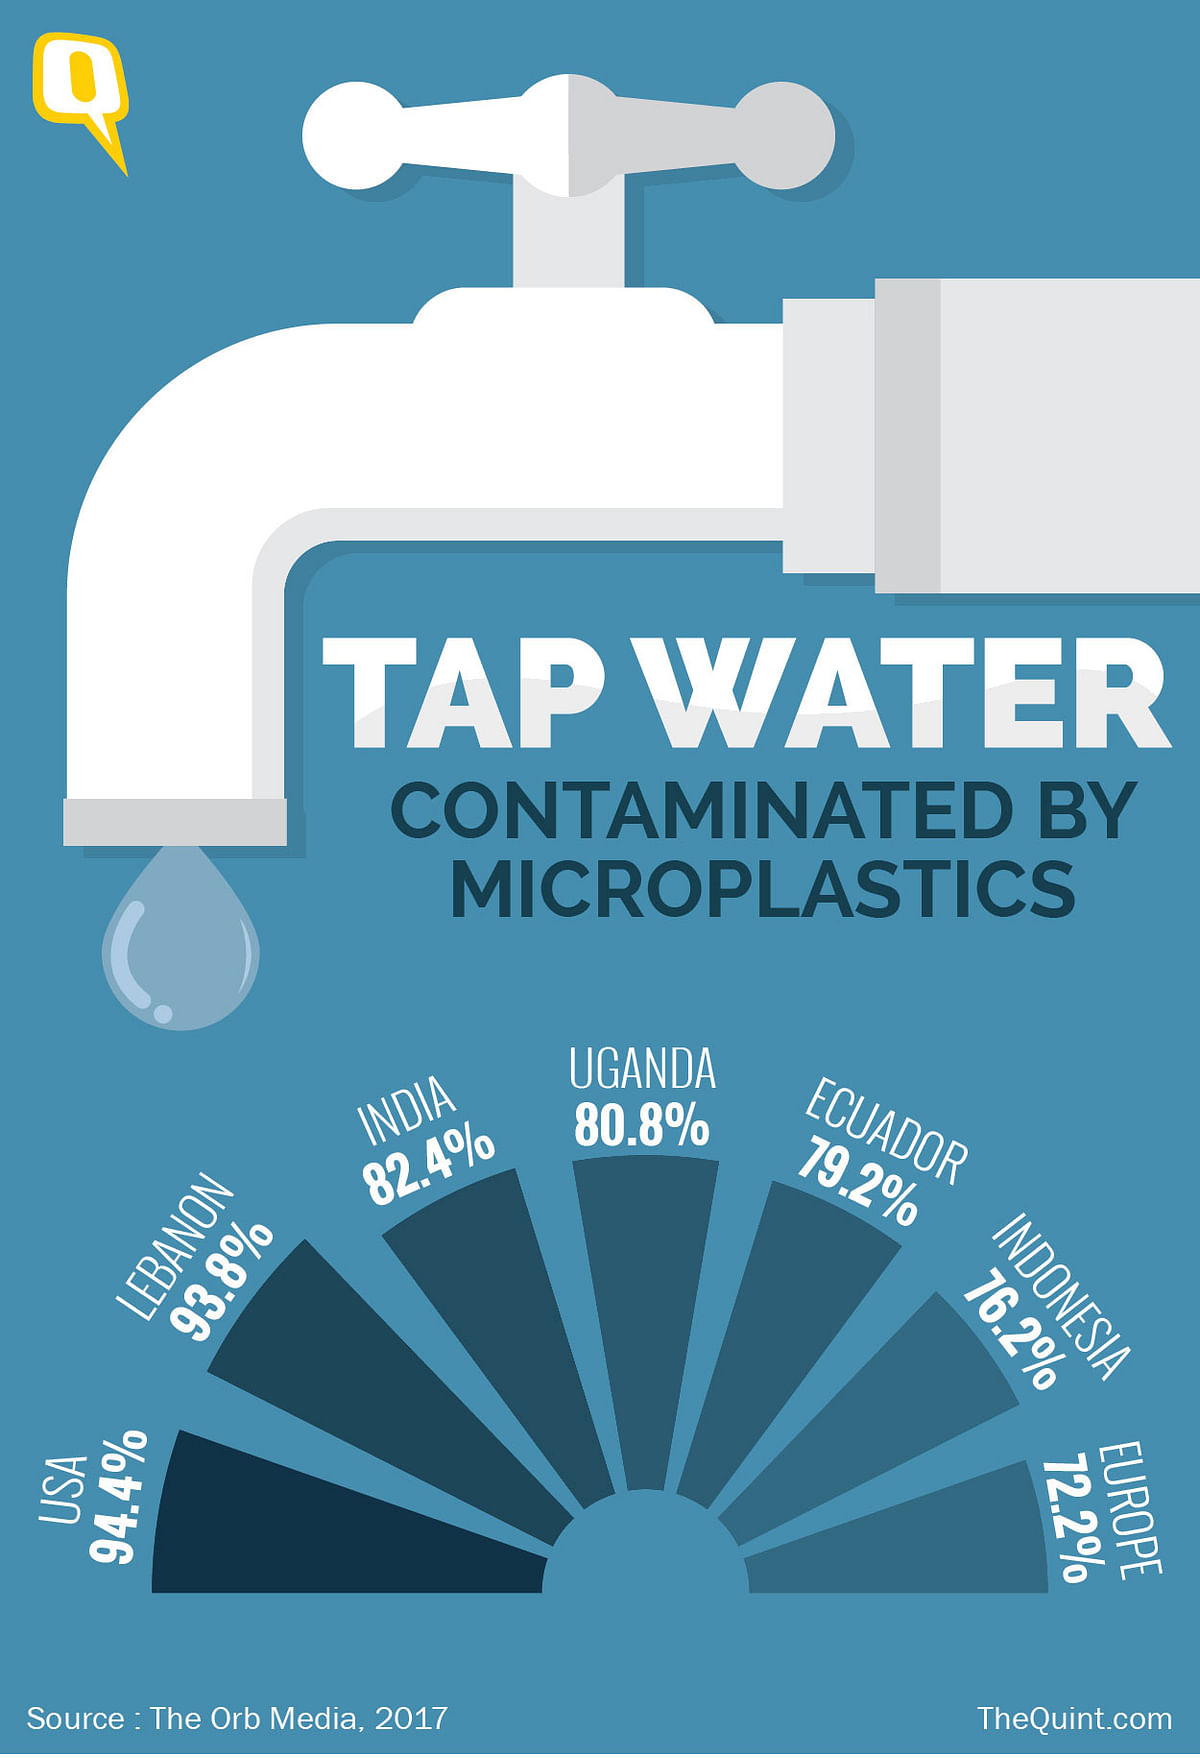 83 percent of the the tap water samples collected from across the world were found to be contaminated with microplastics.